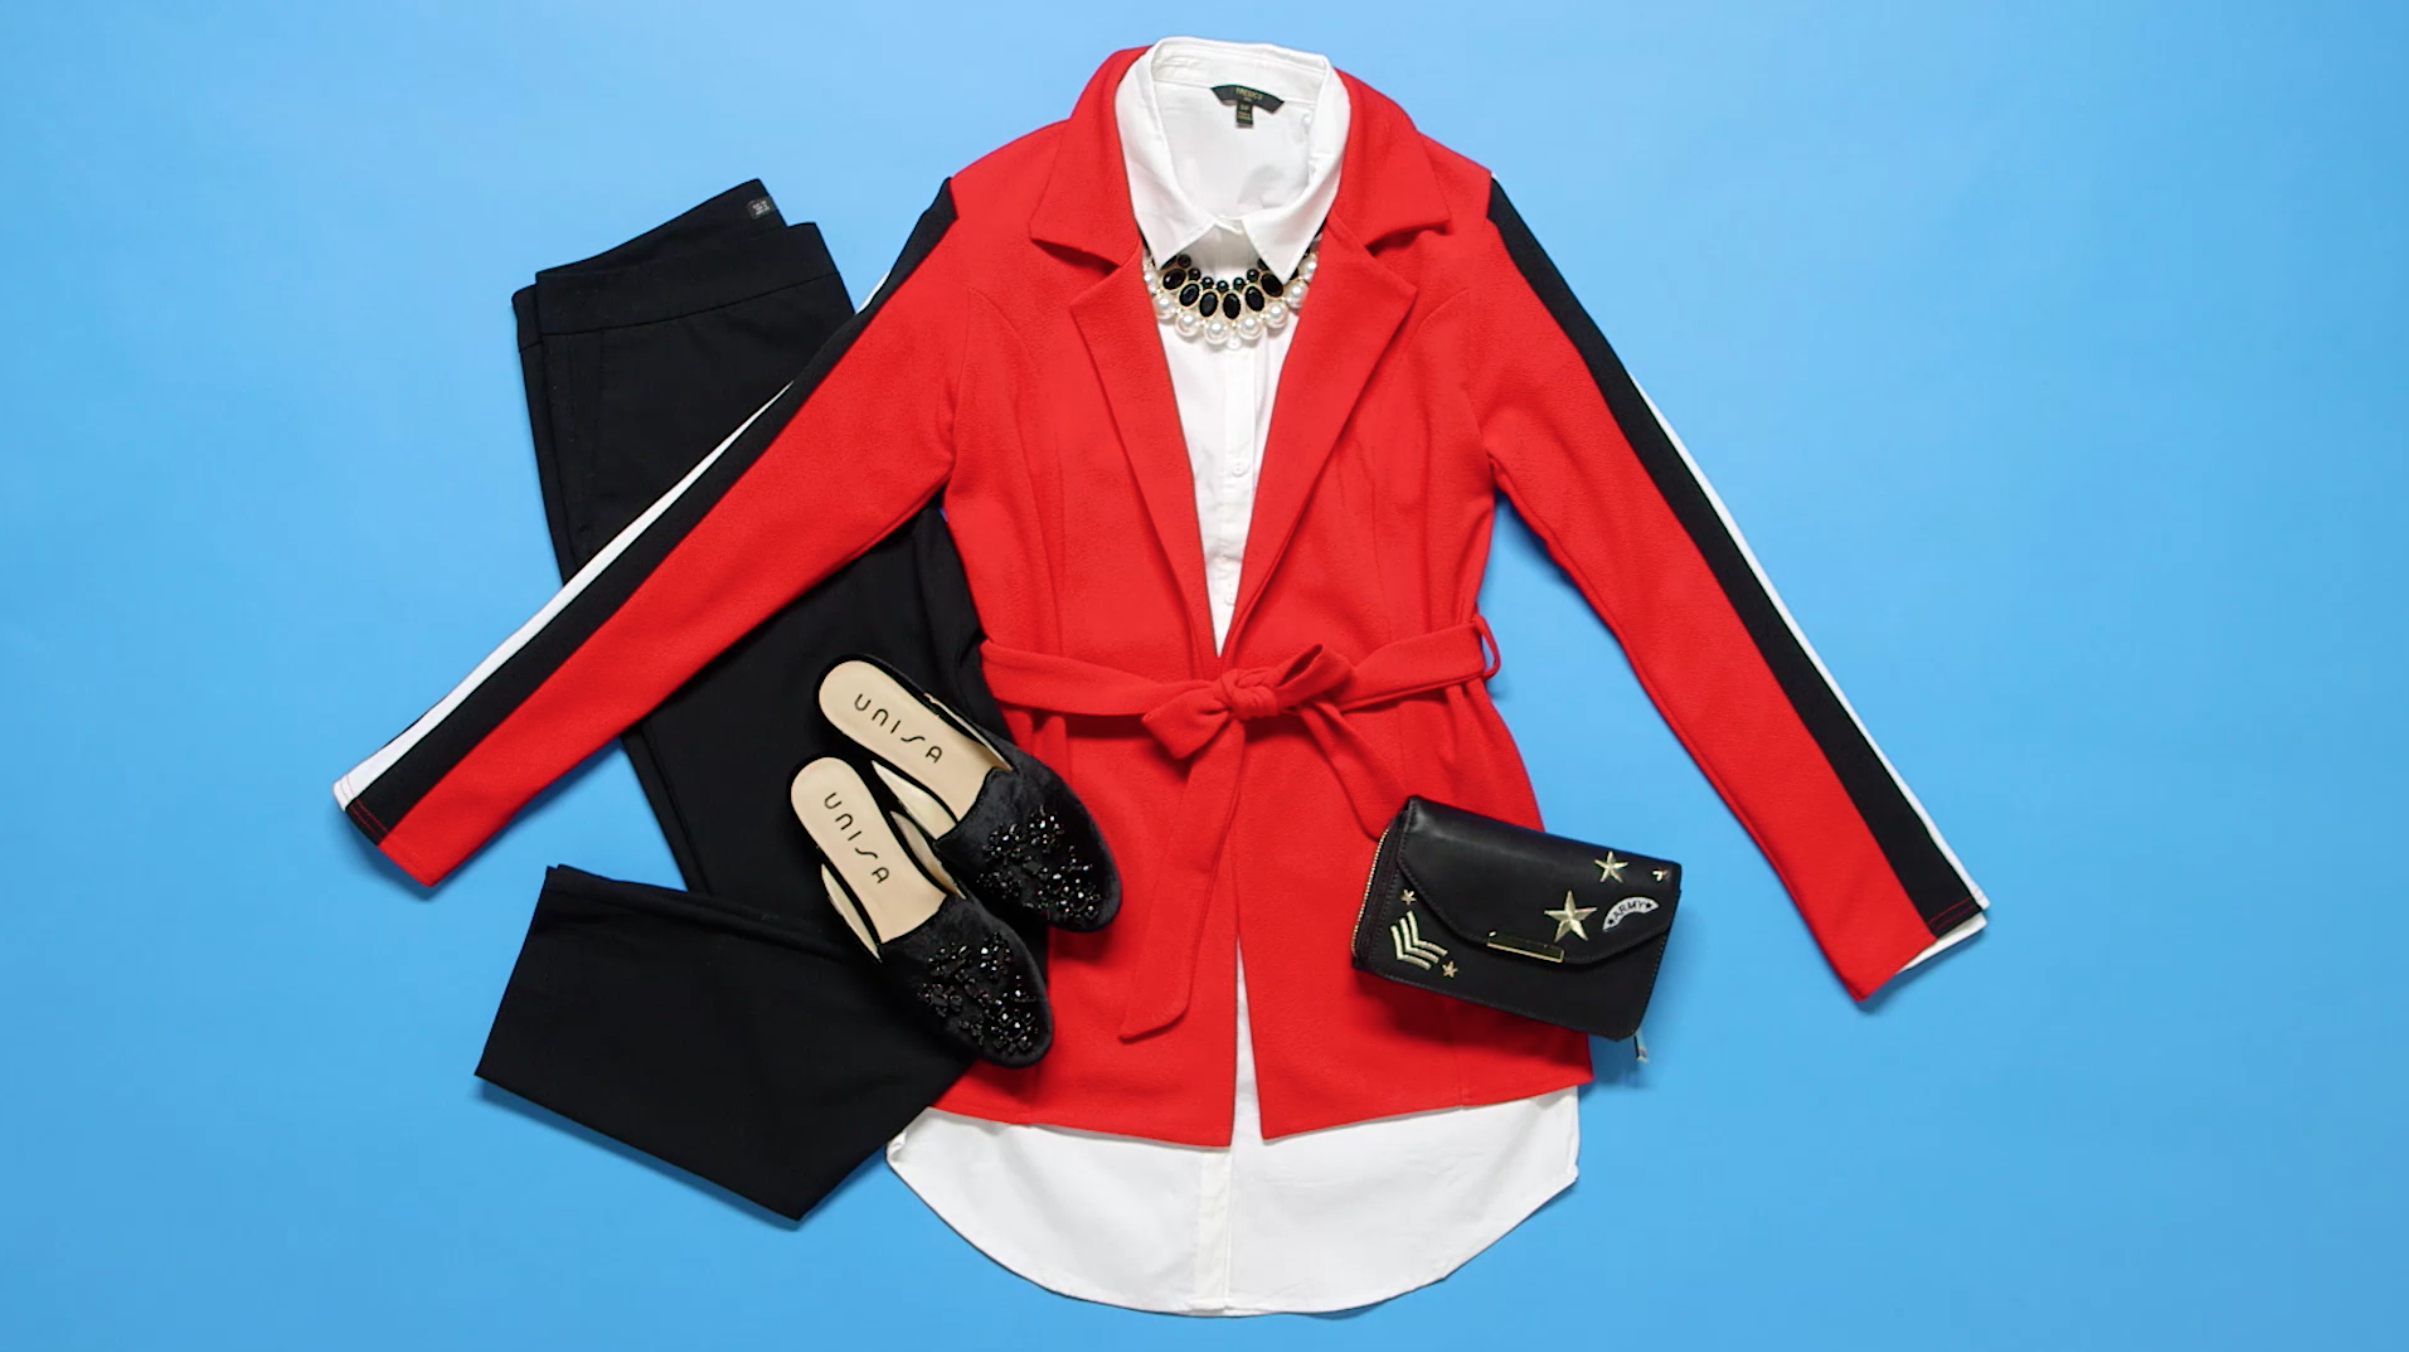 41500f33388 5 Cute Interview Outfits for Teens - What to Wear to an Interview